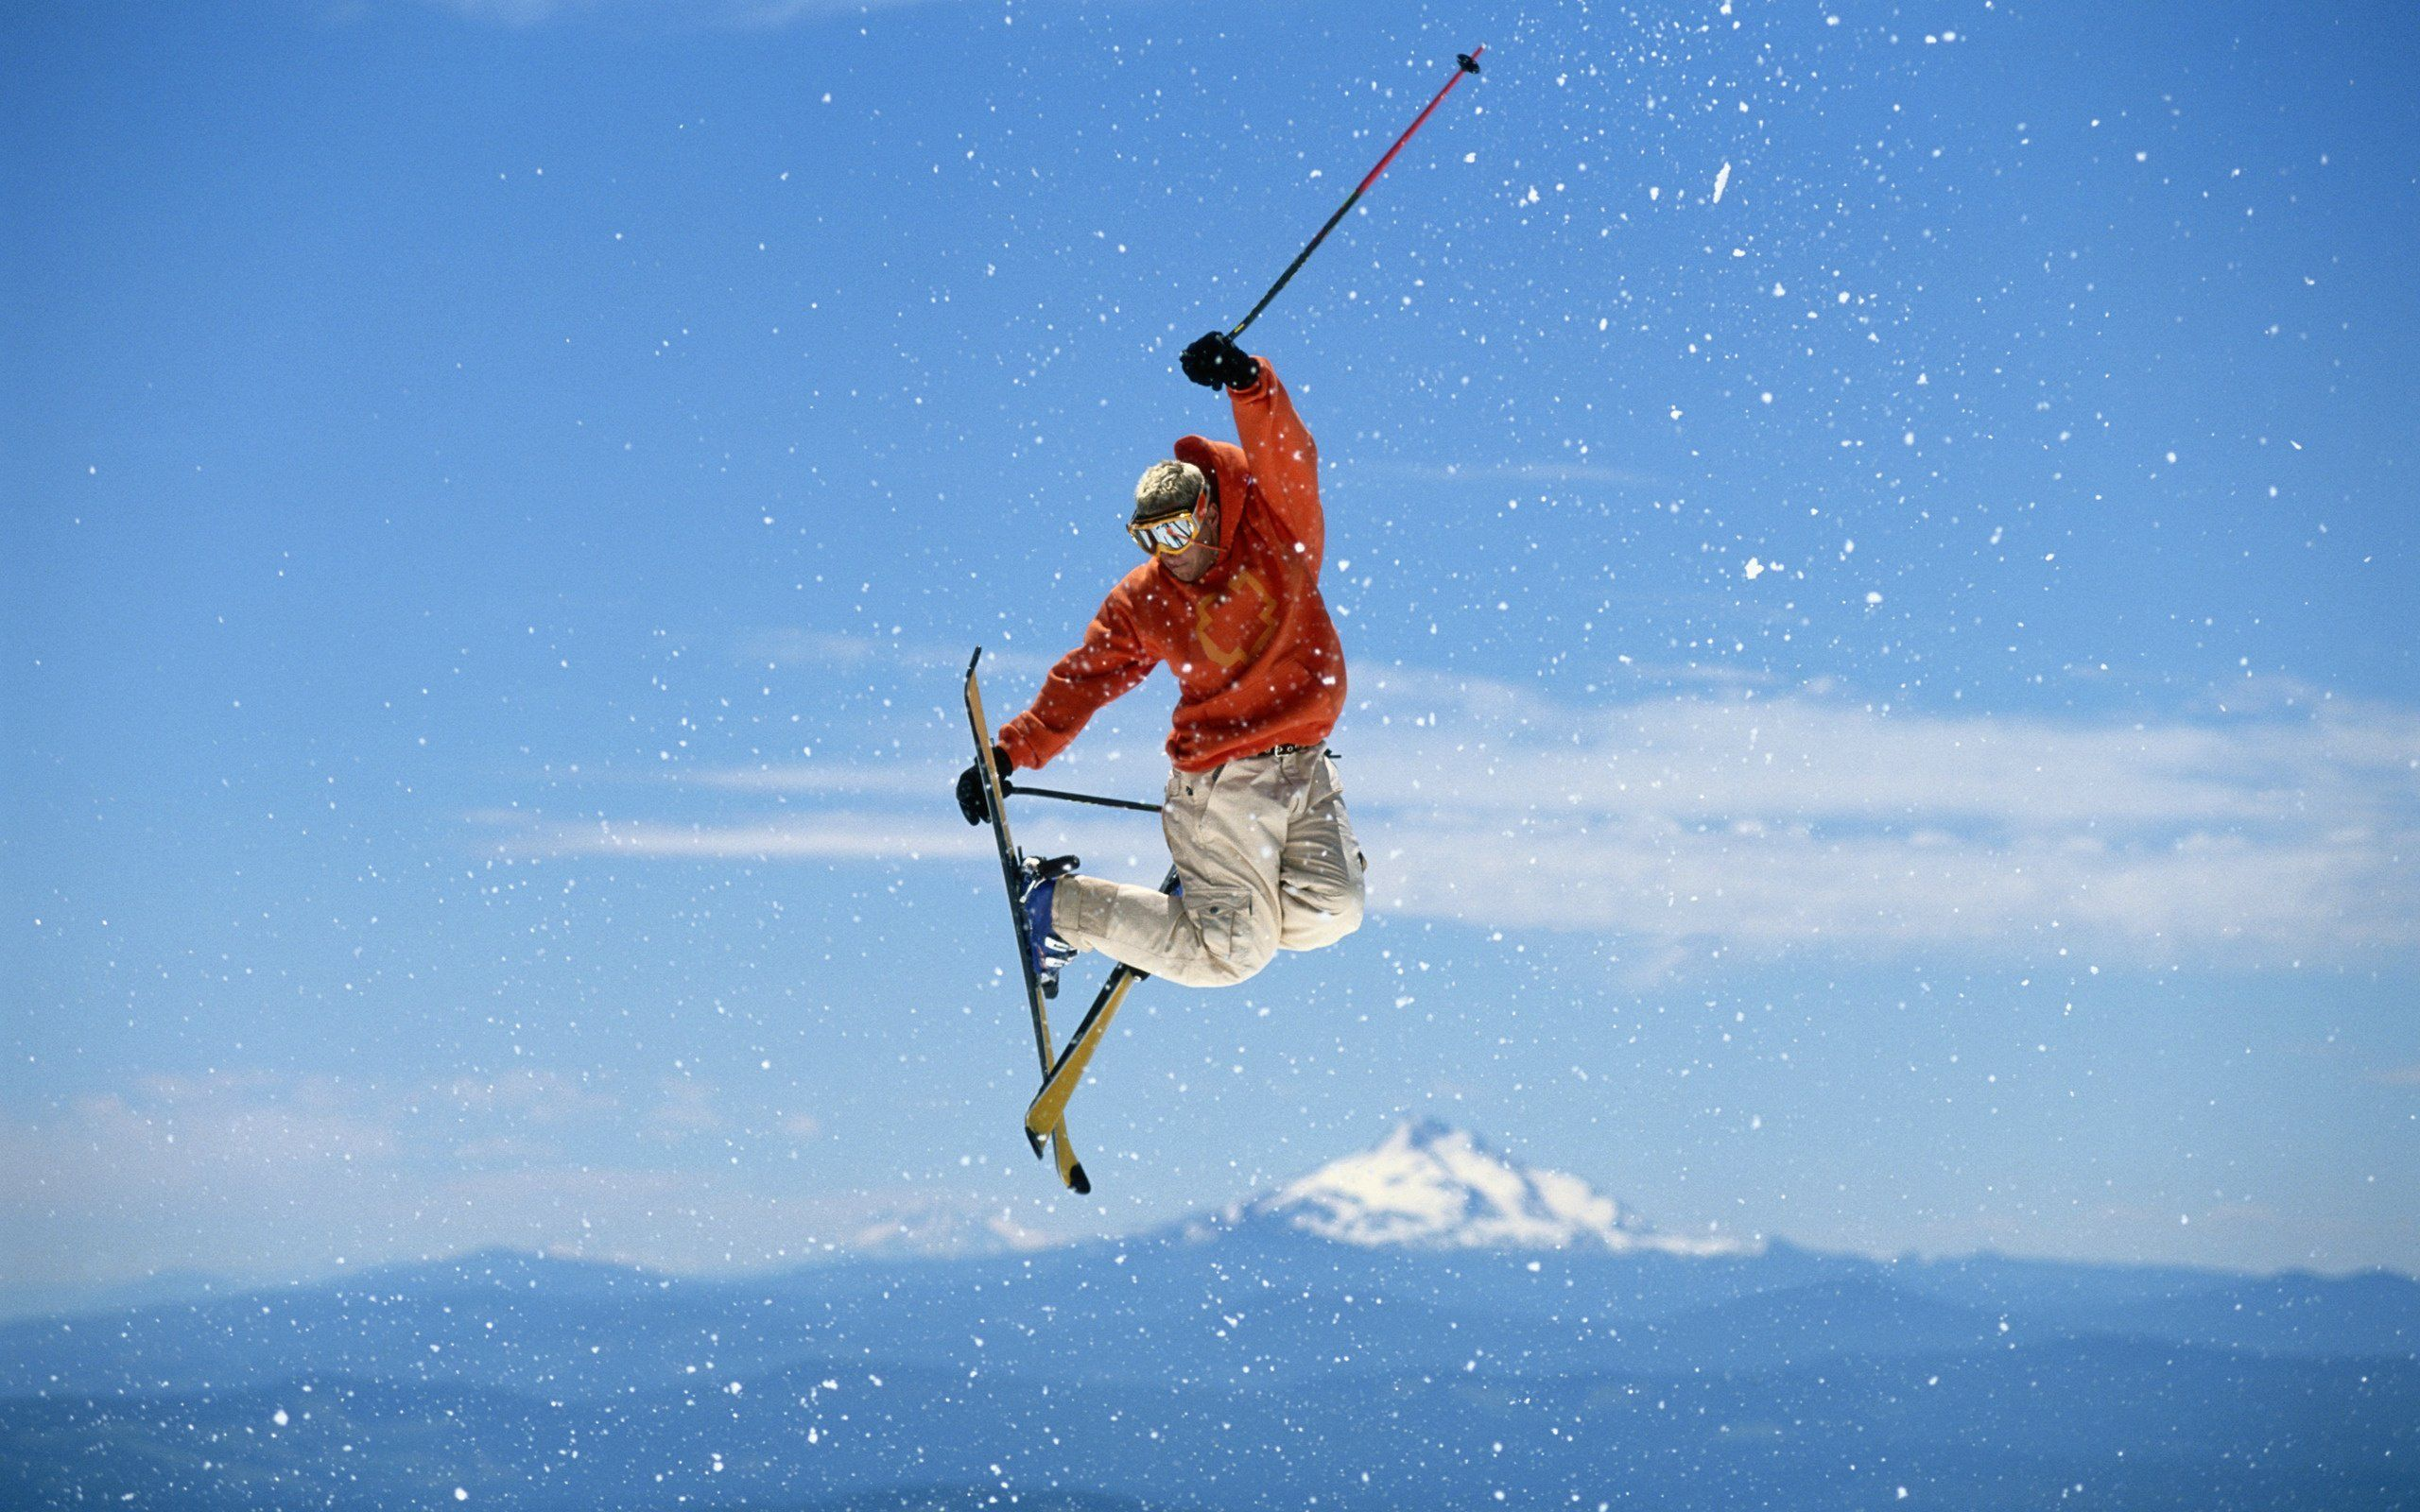 2560x1600 Skiing Desktop Wallpapers very beautiful and attractive.Now you can ...